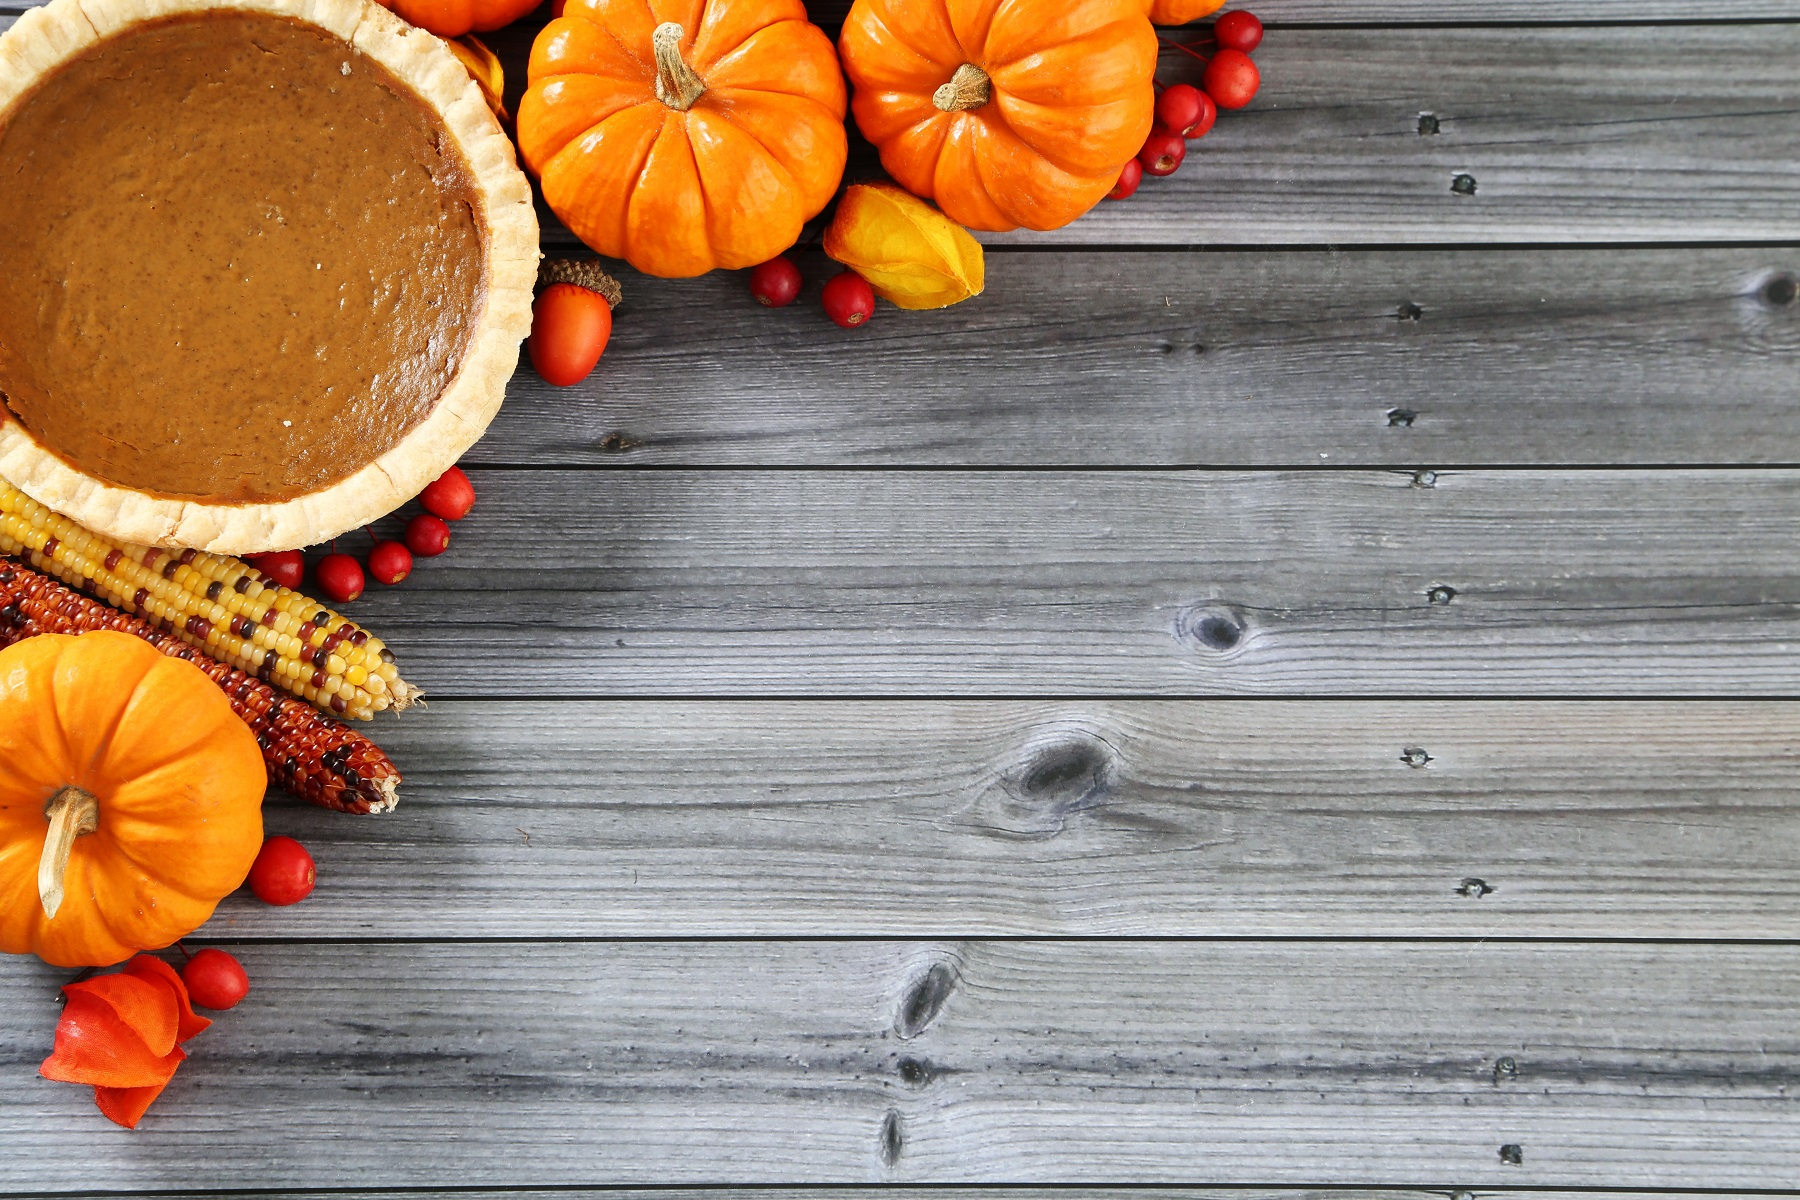 This Thanksgiving, Let's Work to Address Food Insecurity ...Thanksgiving